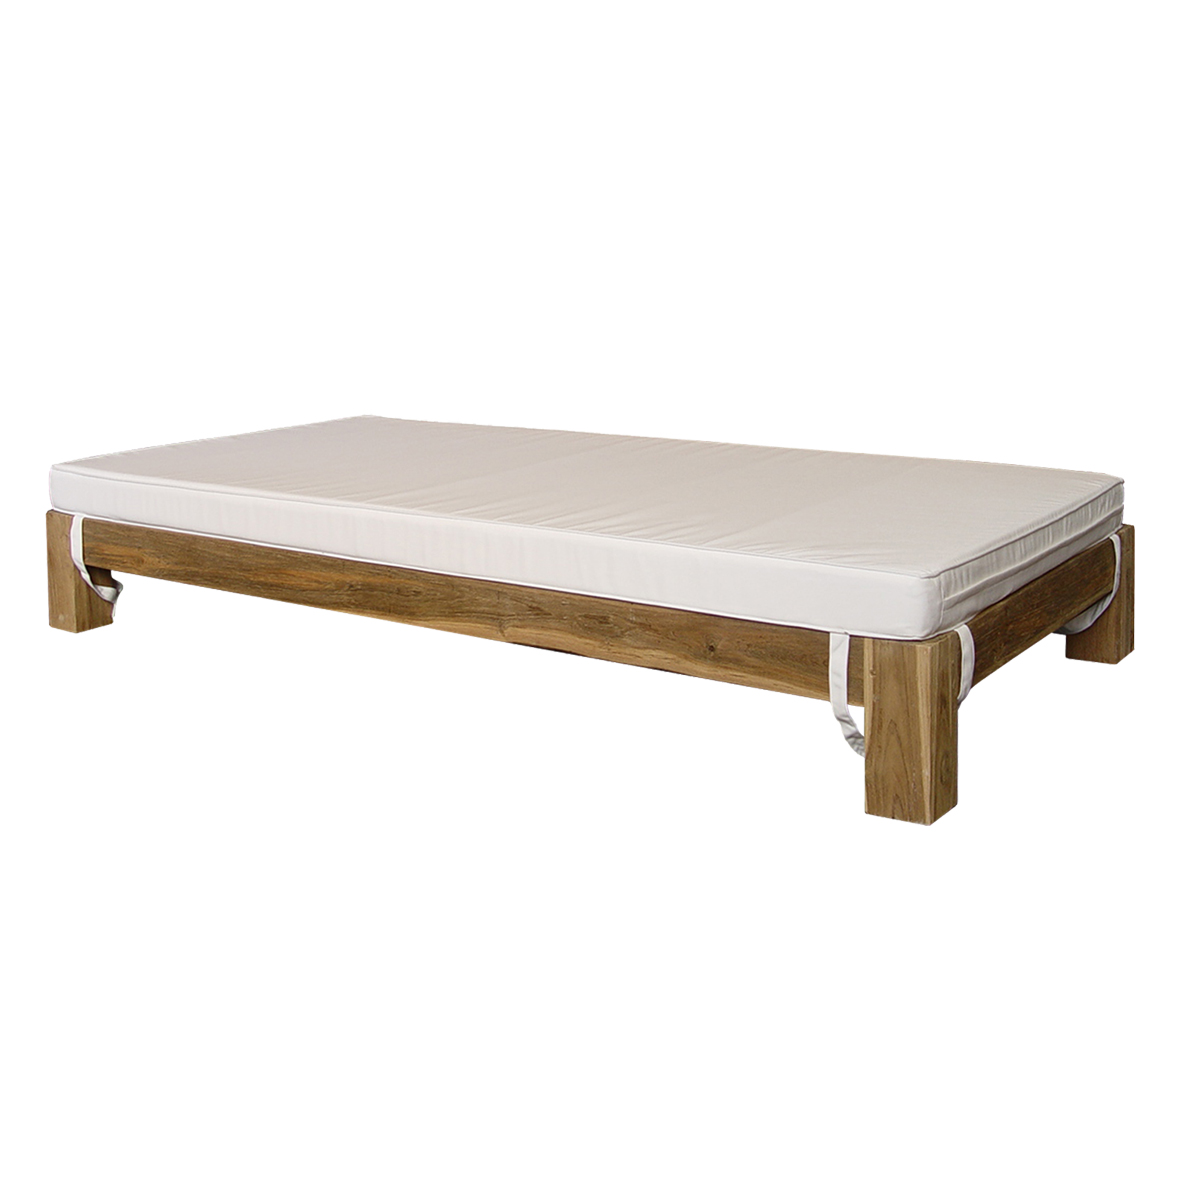 Outdoor Daybeds For Sale Indoor And Outdoor Daybeds For Sale Teak Daybed In Perth